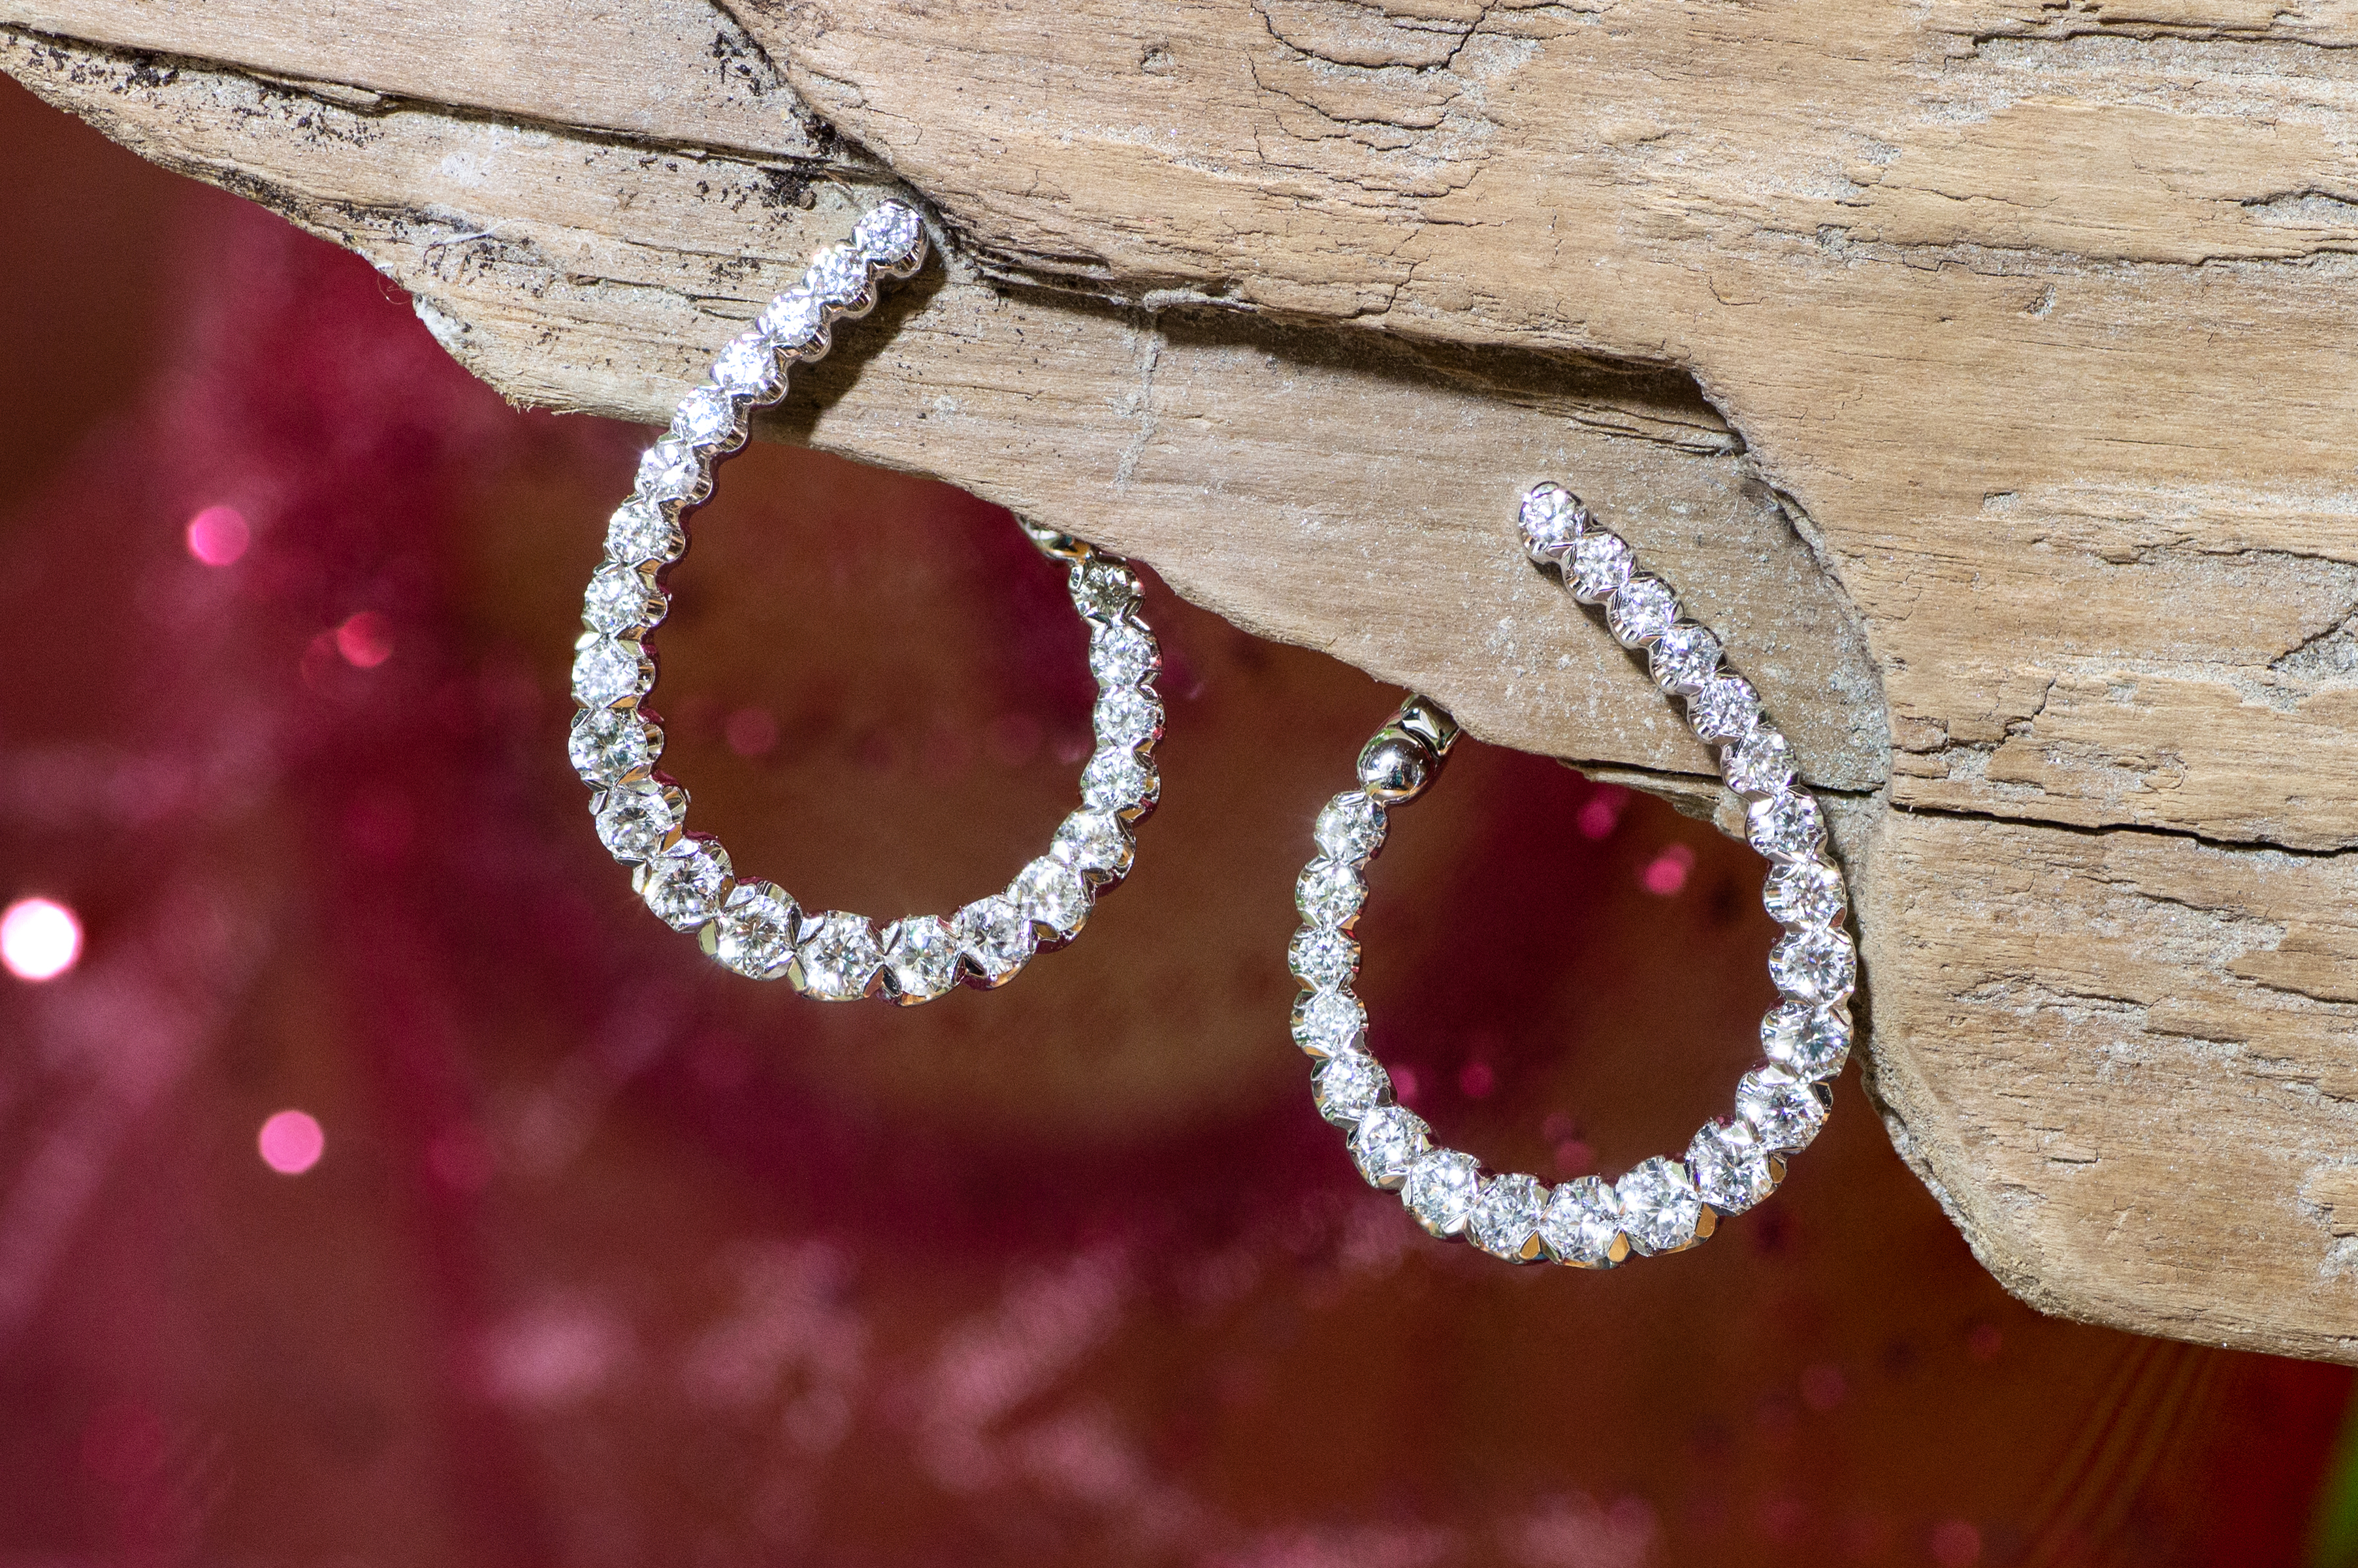 Stunning earrings in White Gold with Diamonds